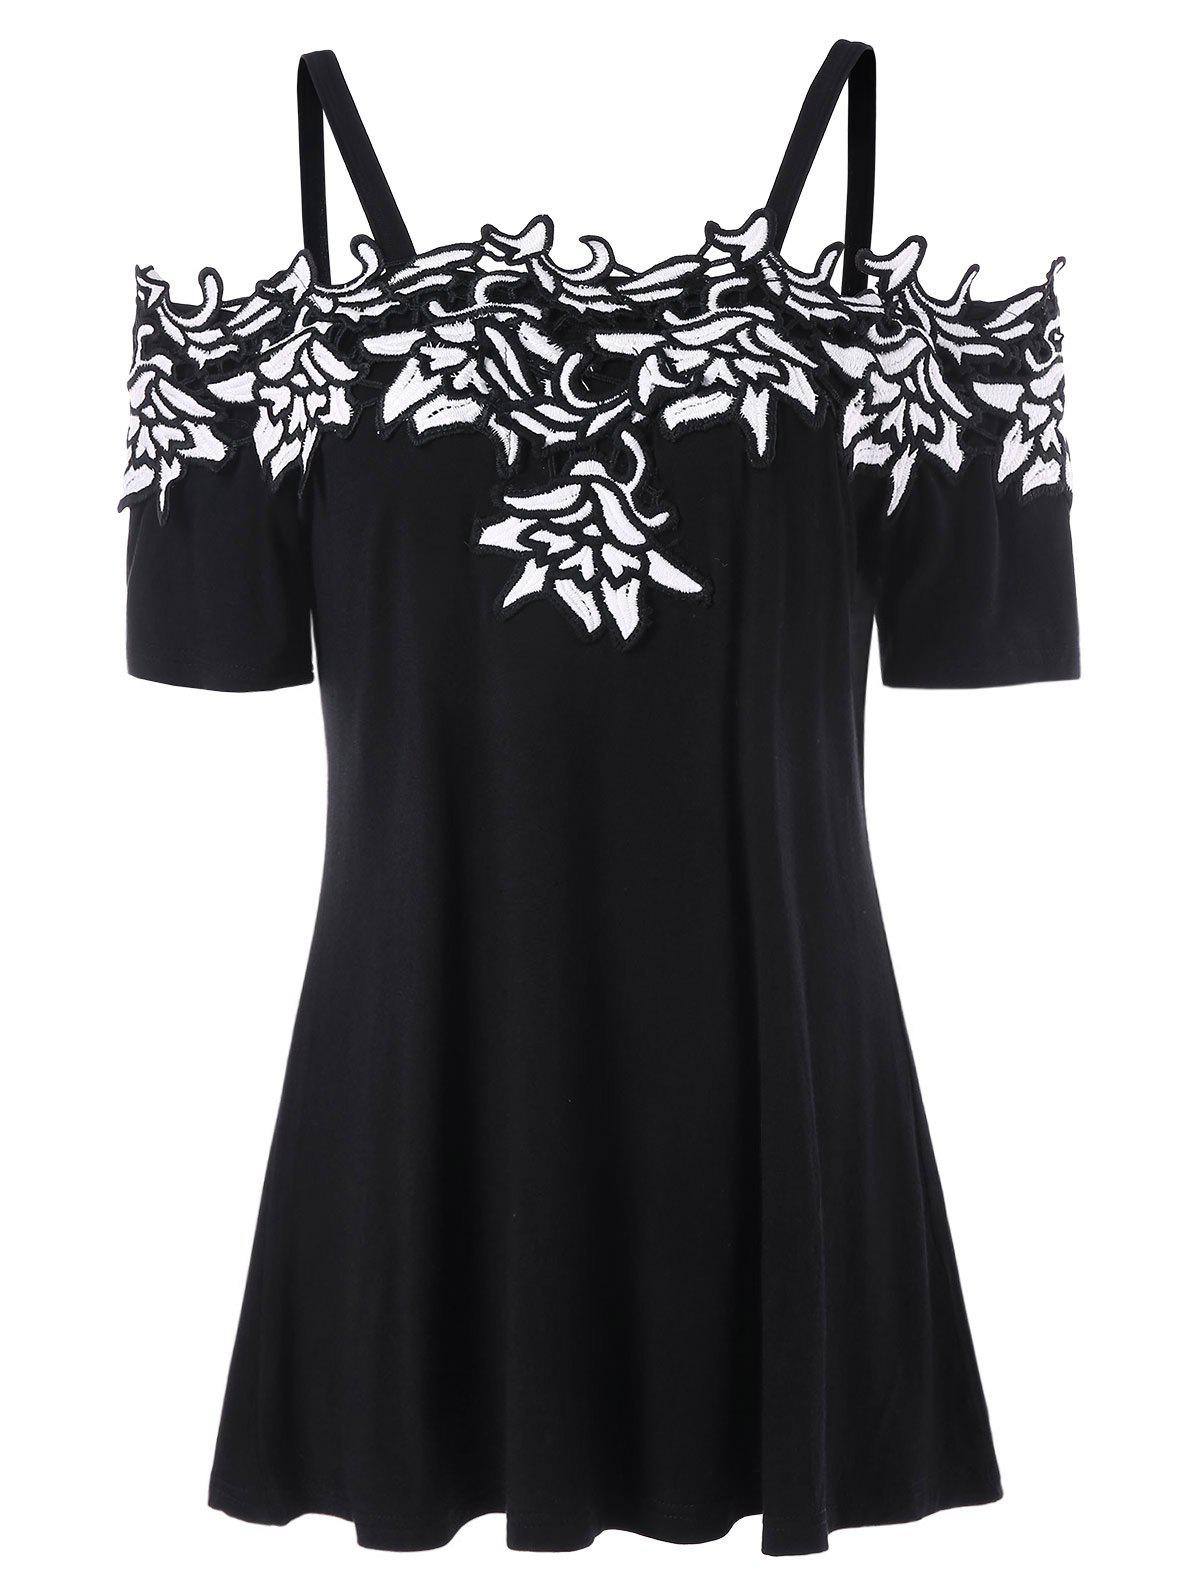 Fancy Cold Shoulder Contrast Lace Applique T-shirt